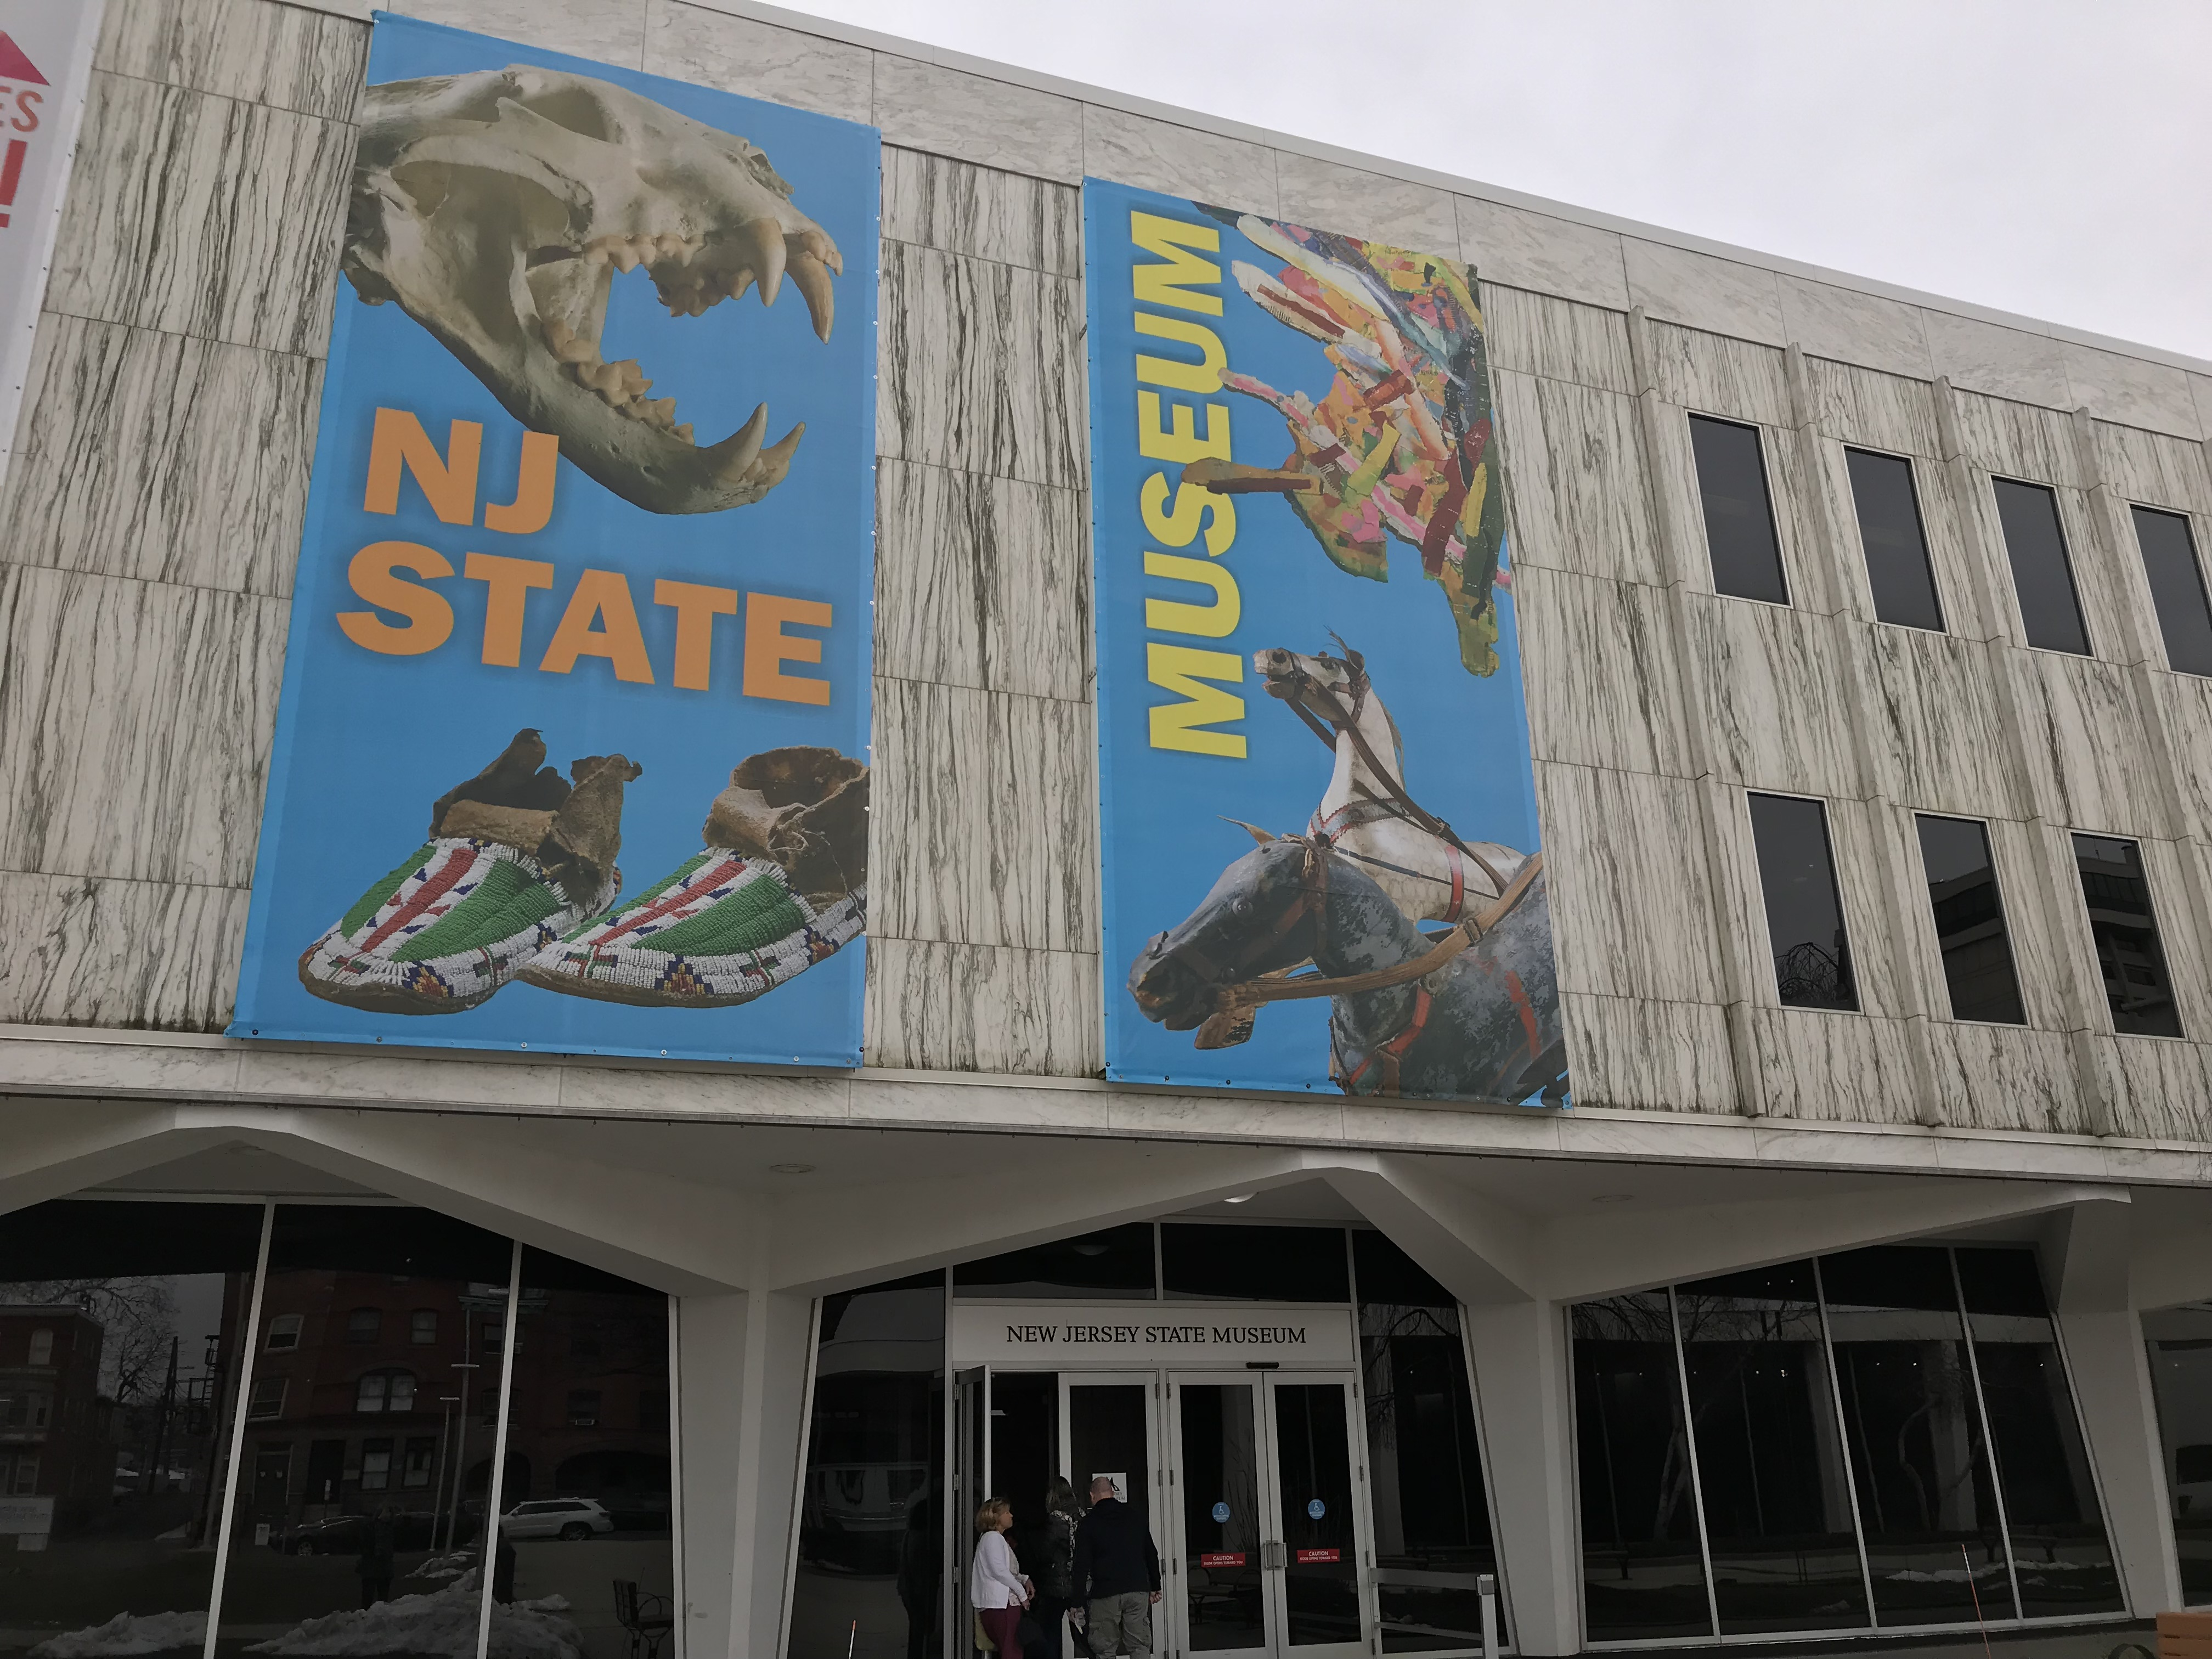 New Jersey State Museum - Some say the title Chosen Freeholder belongs there